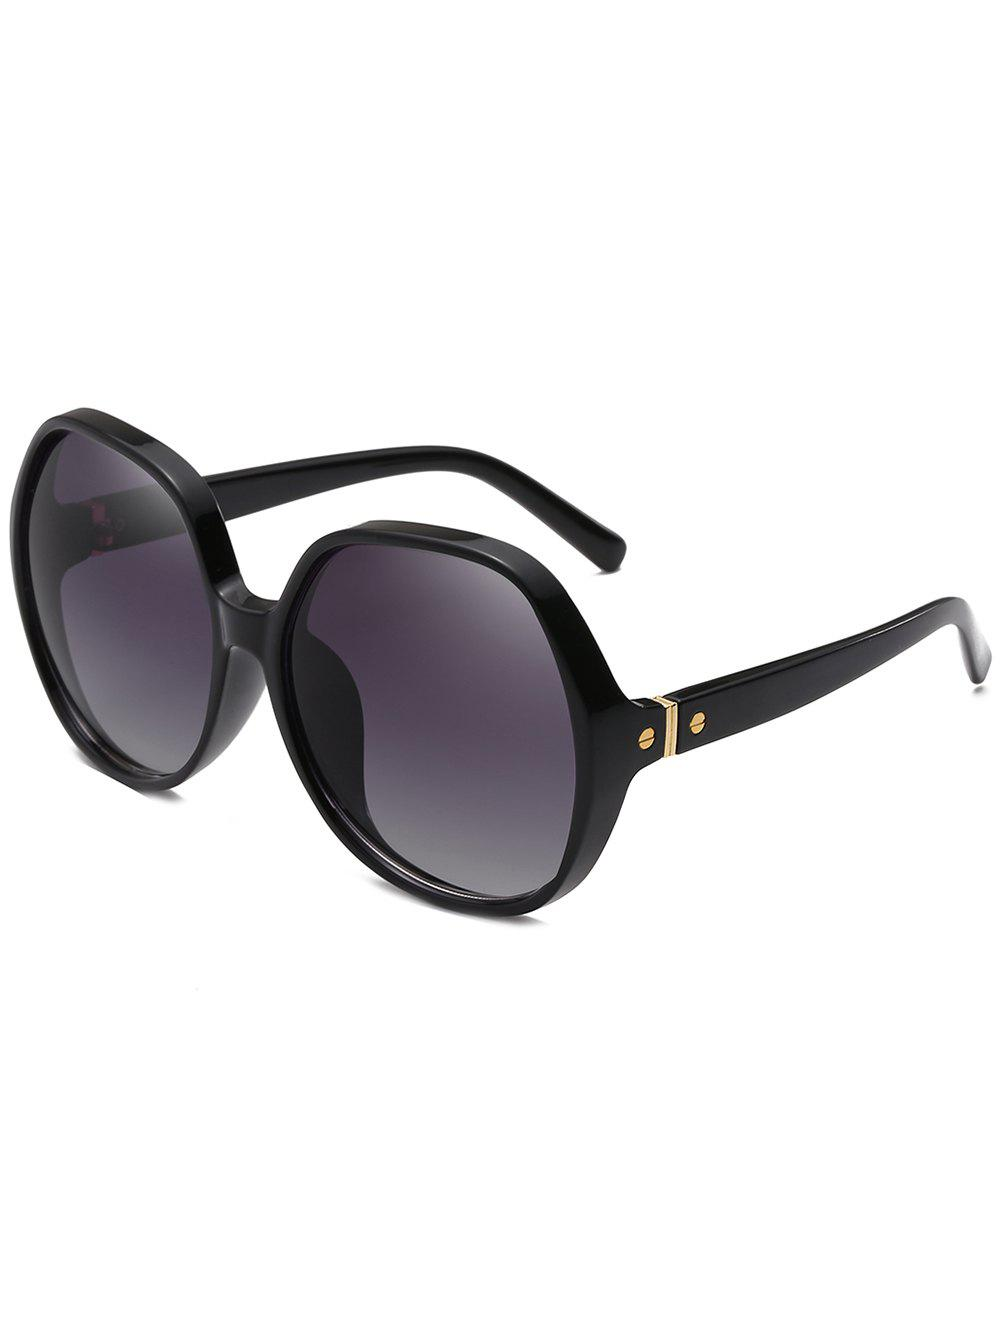 Anti Fatigue Full Frame Oversized Sunglasses